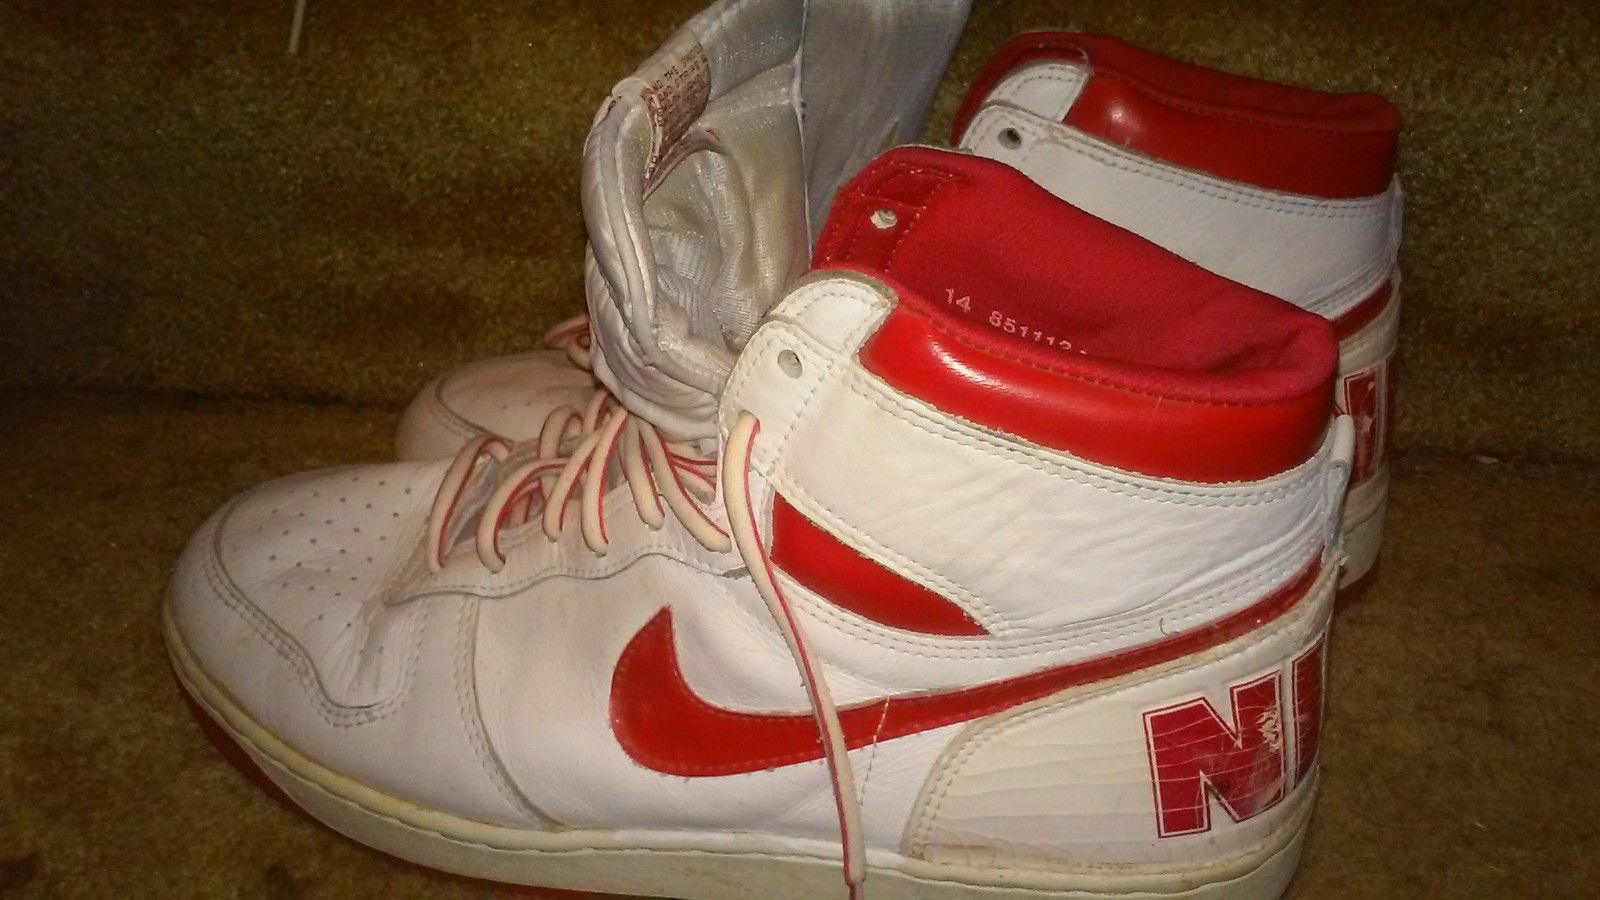 online store 860b7 74d5f Vintage Nike Air 1985 Big Nikes High Top Basketball Hoop Mens Size 14  Shoes  eBay